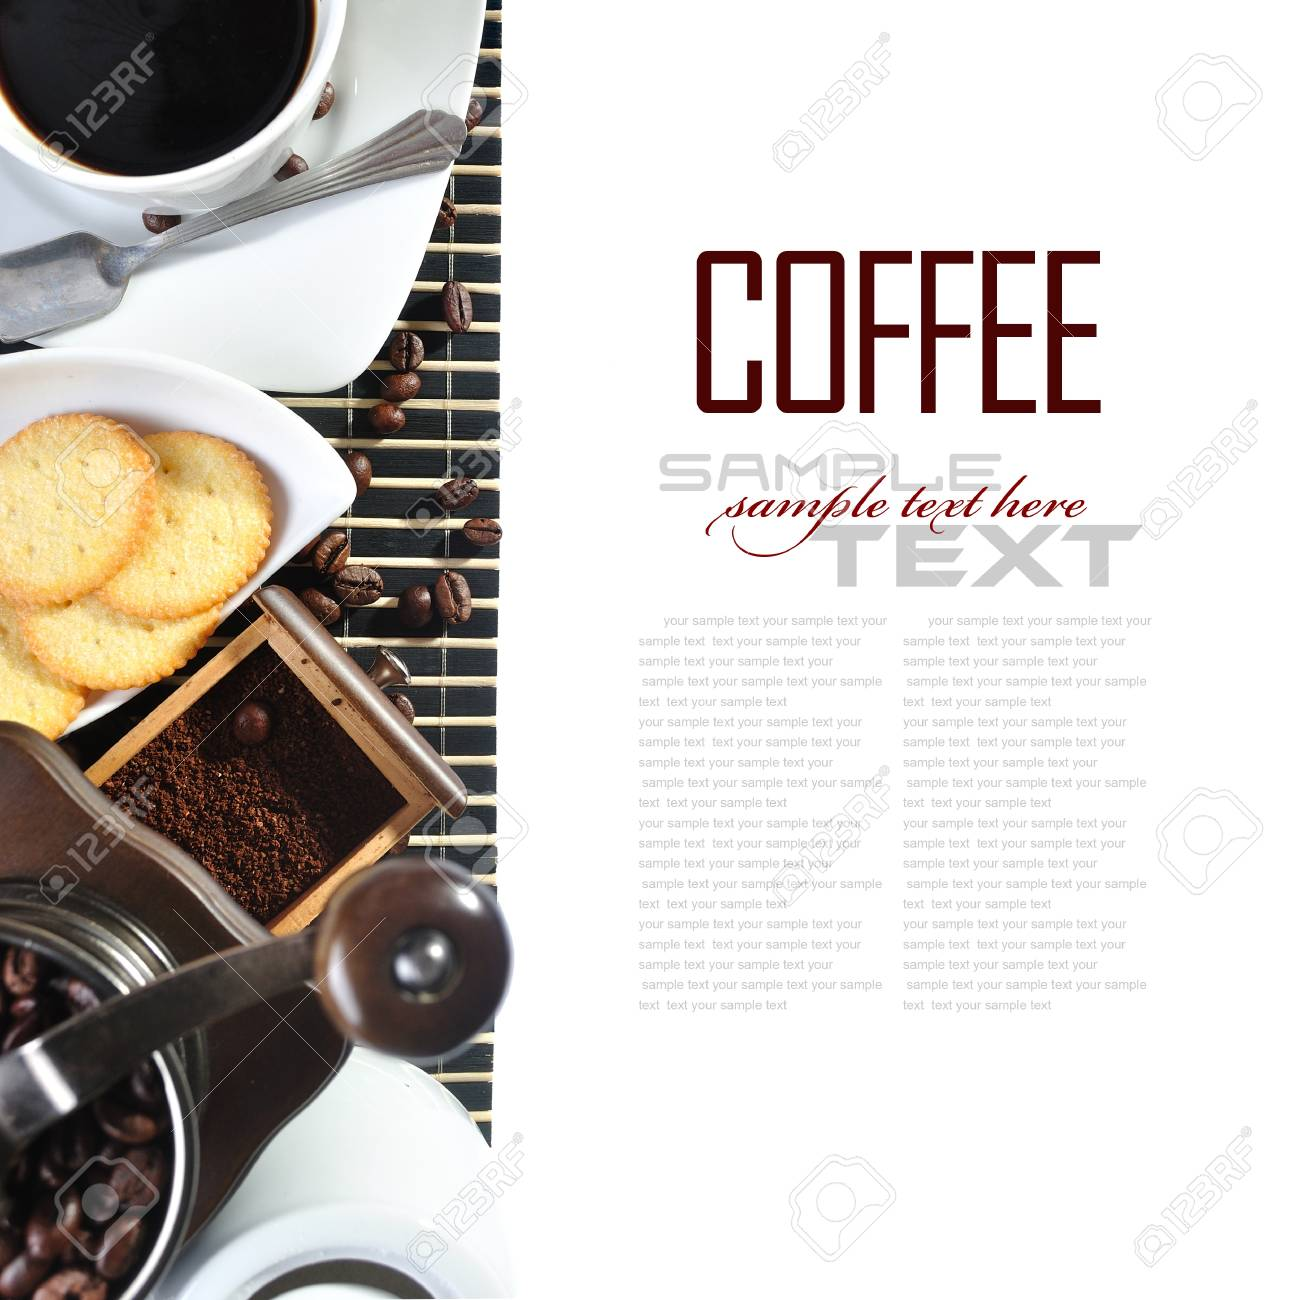 Coffee Break Menu With Coffee Ingredient Coffee Grinder Stock Photo Picture And Royalty Free Image Image 13906530